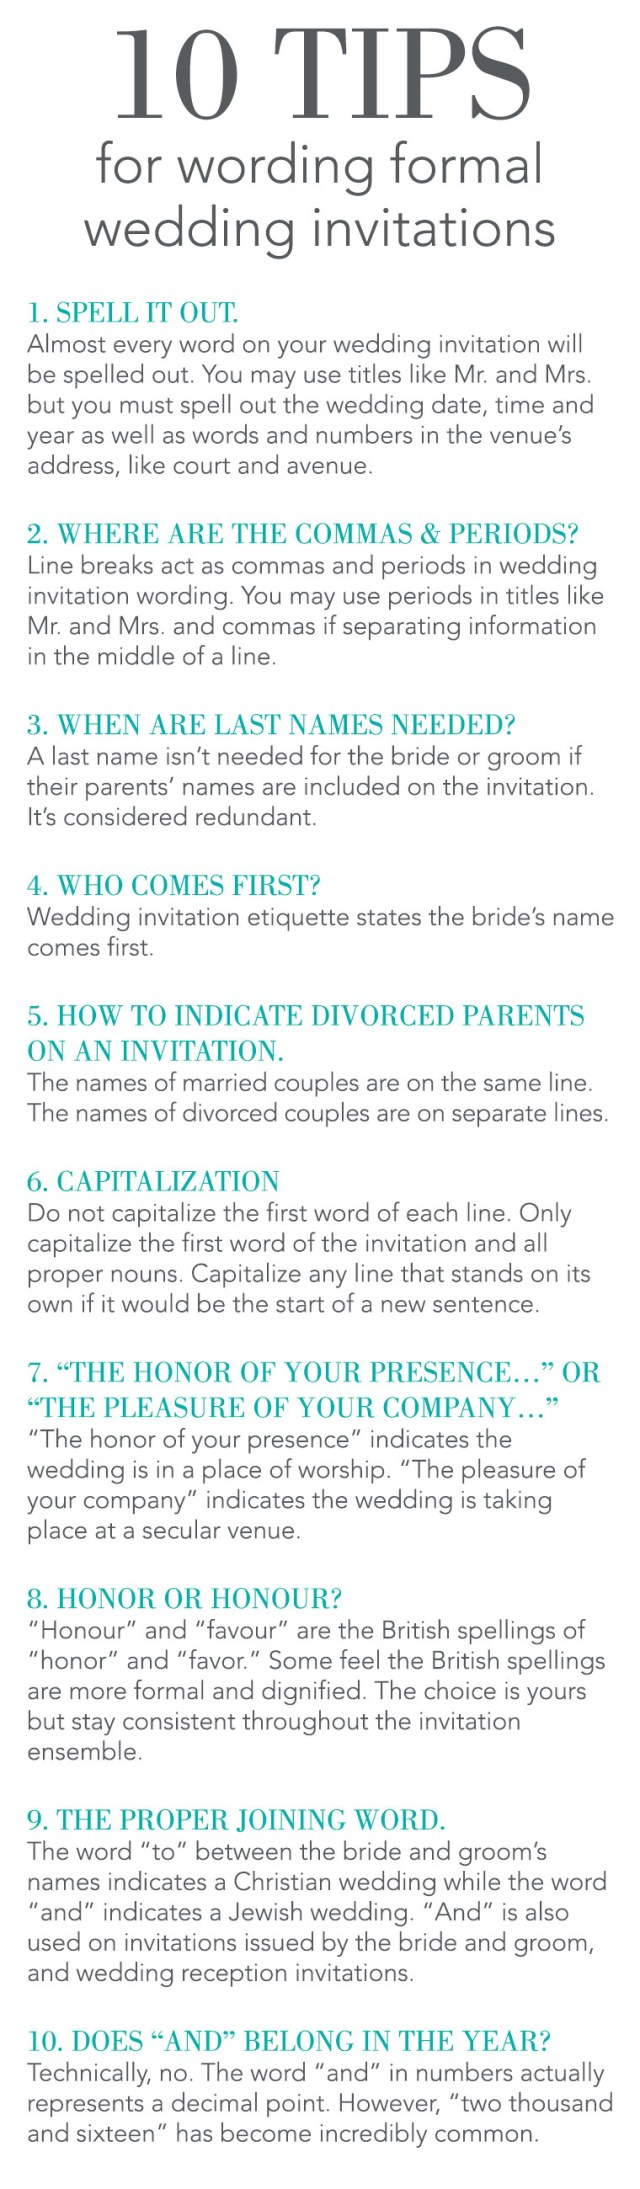 Proper Wedding Invitation 10 Tips For Wording Formal Wedding Invitations Invitations Dawn